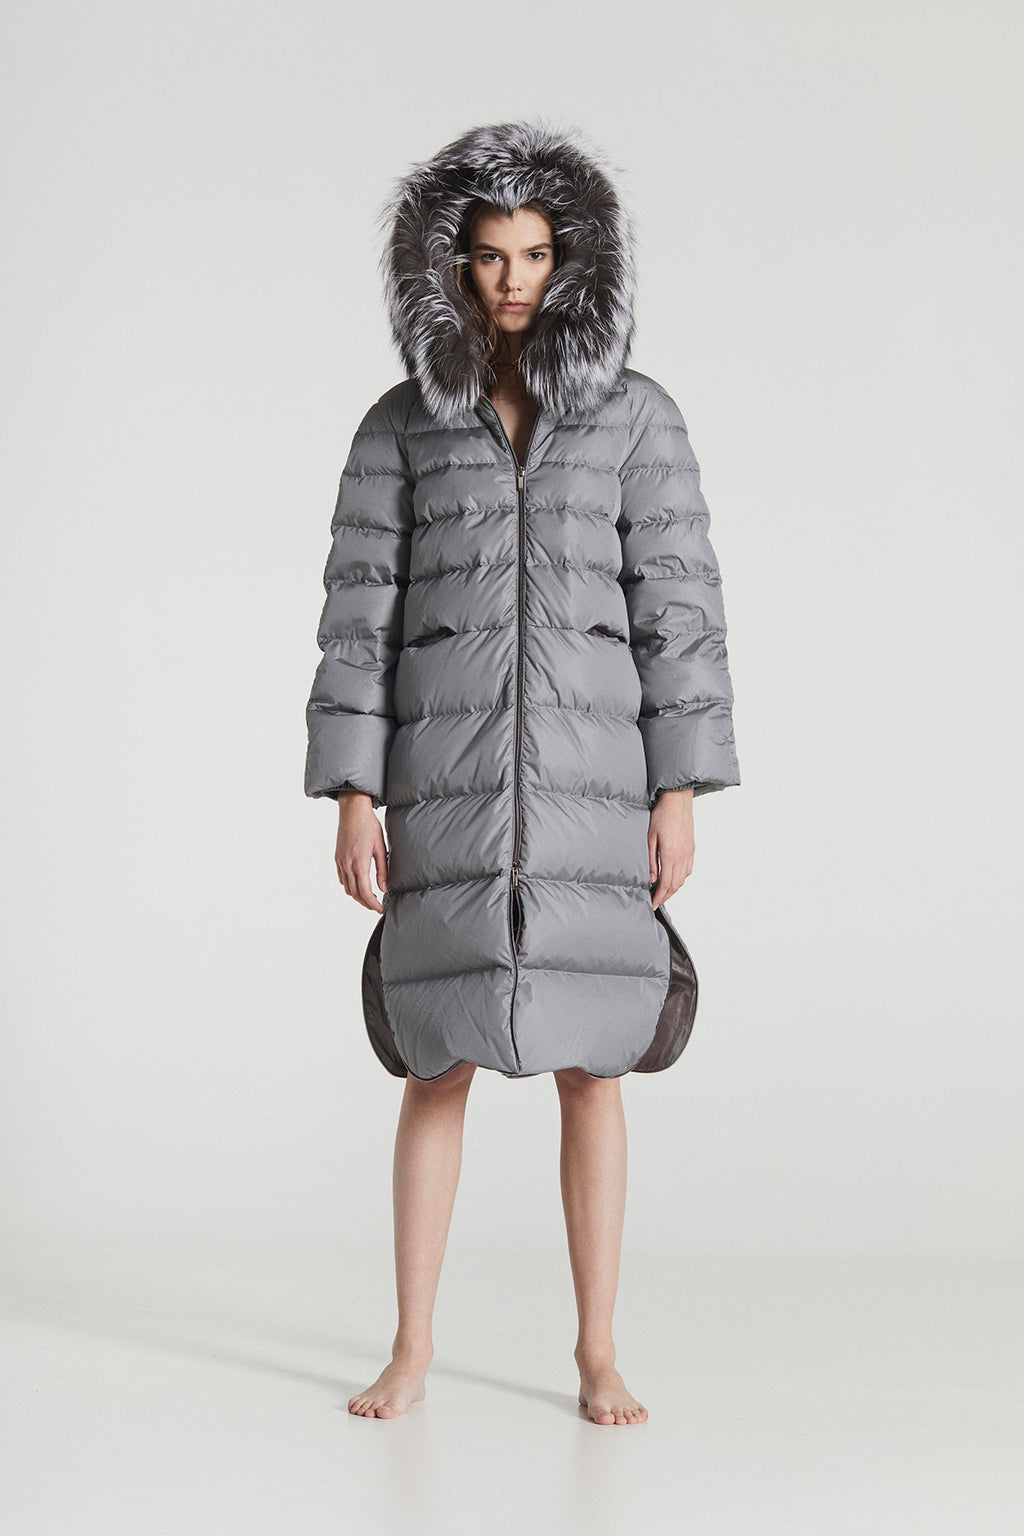 REBECCA MAXI / Silver Grey & Black Goose Down horizontally stitched Superlight Coat